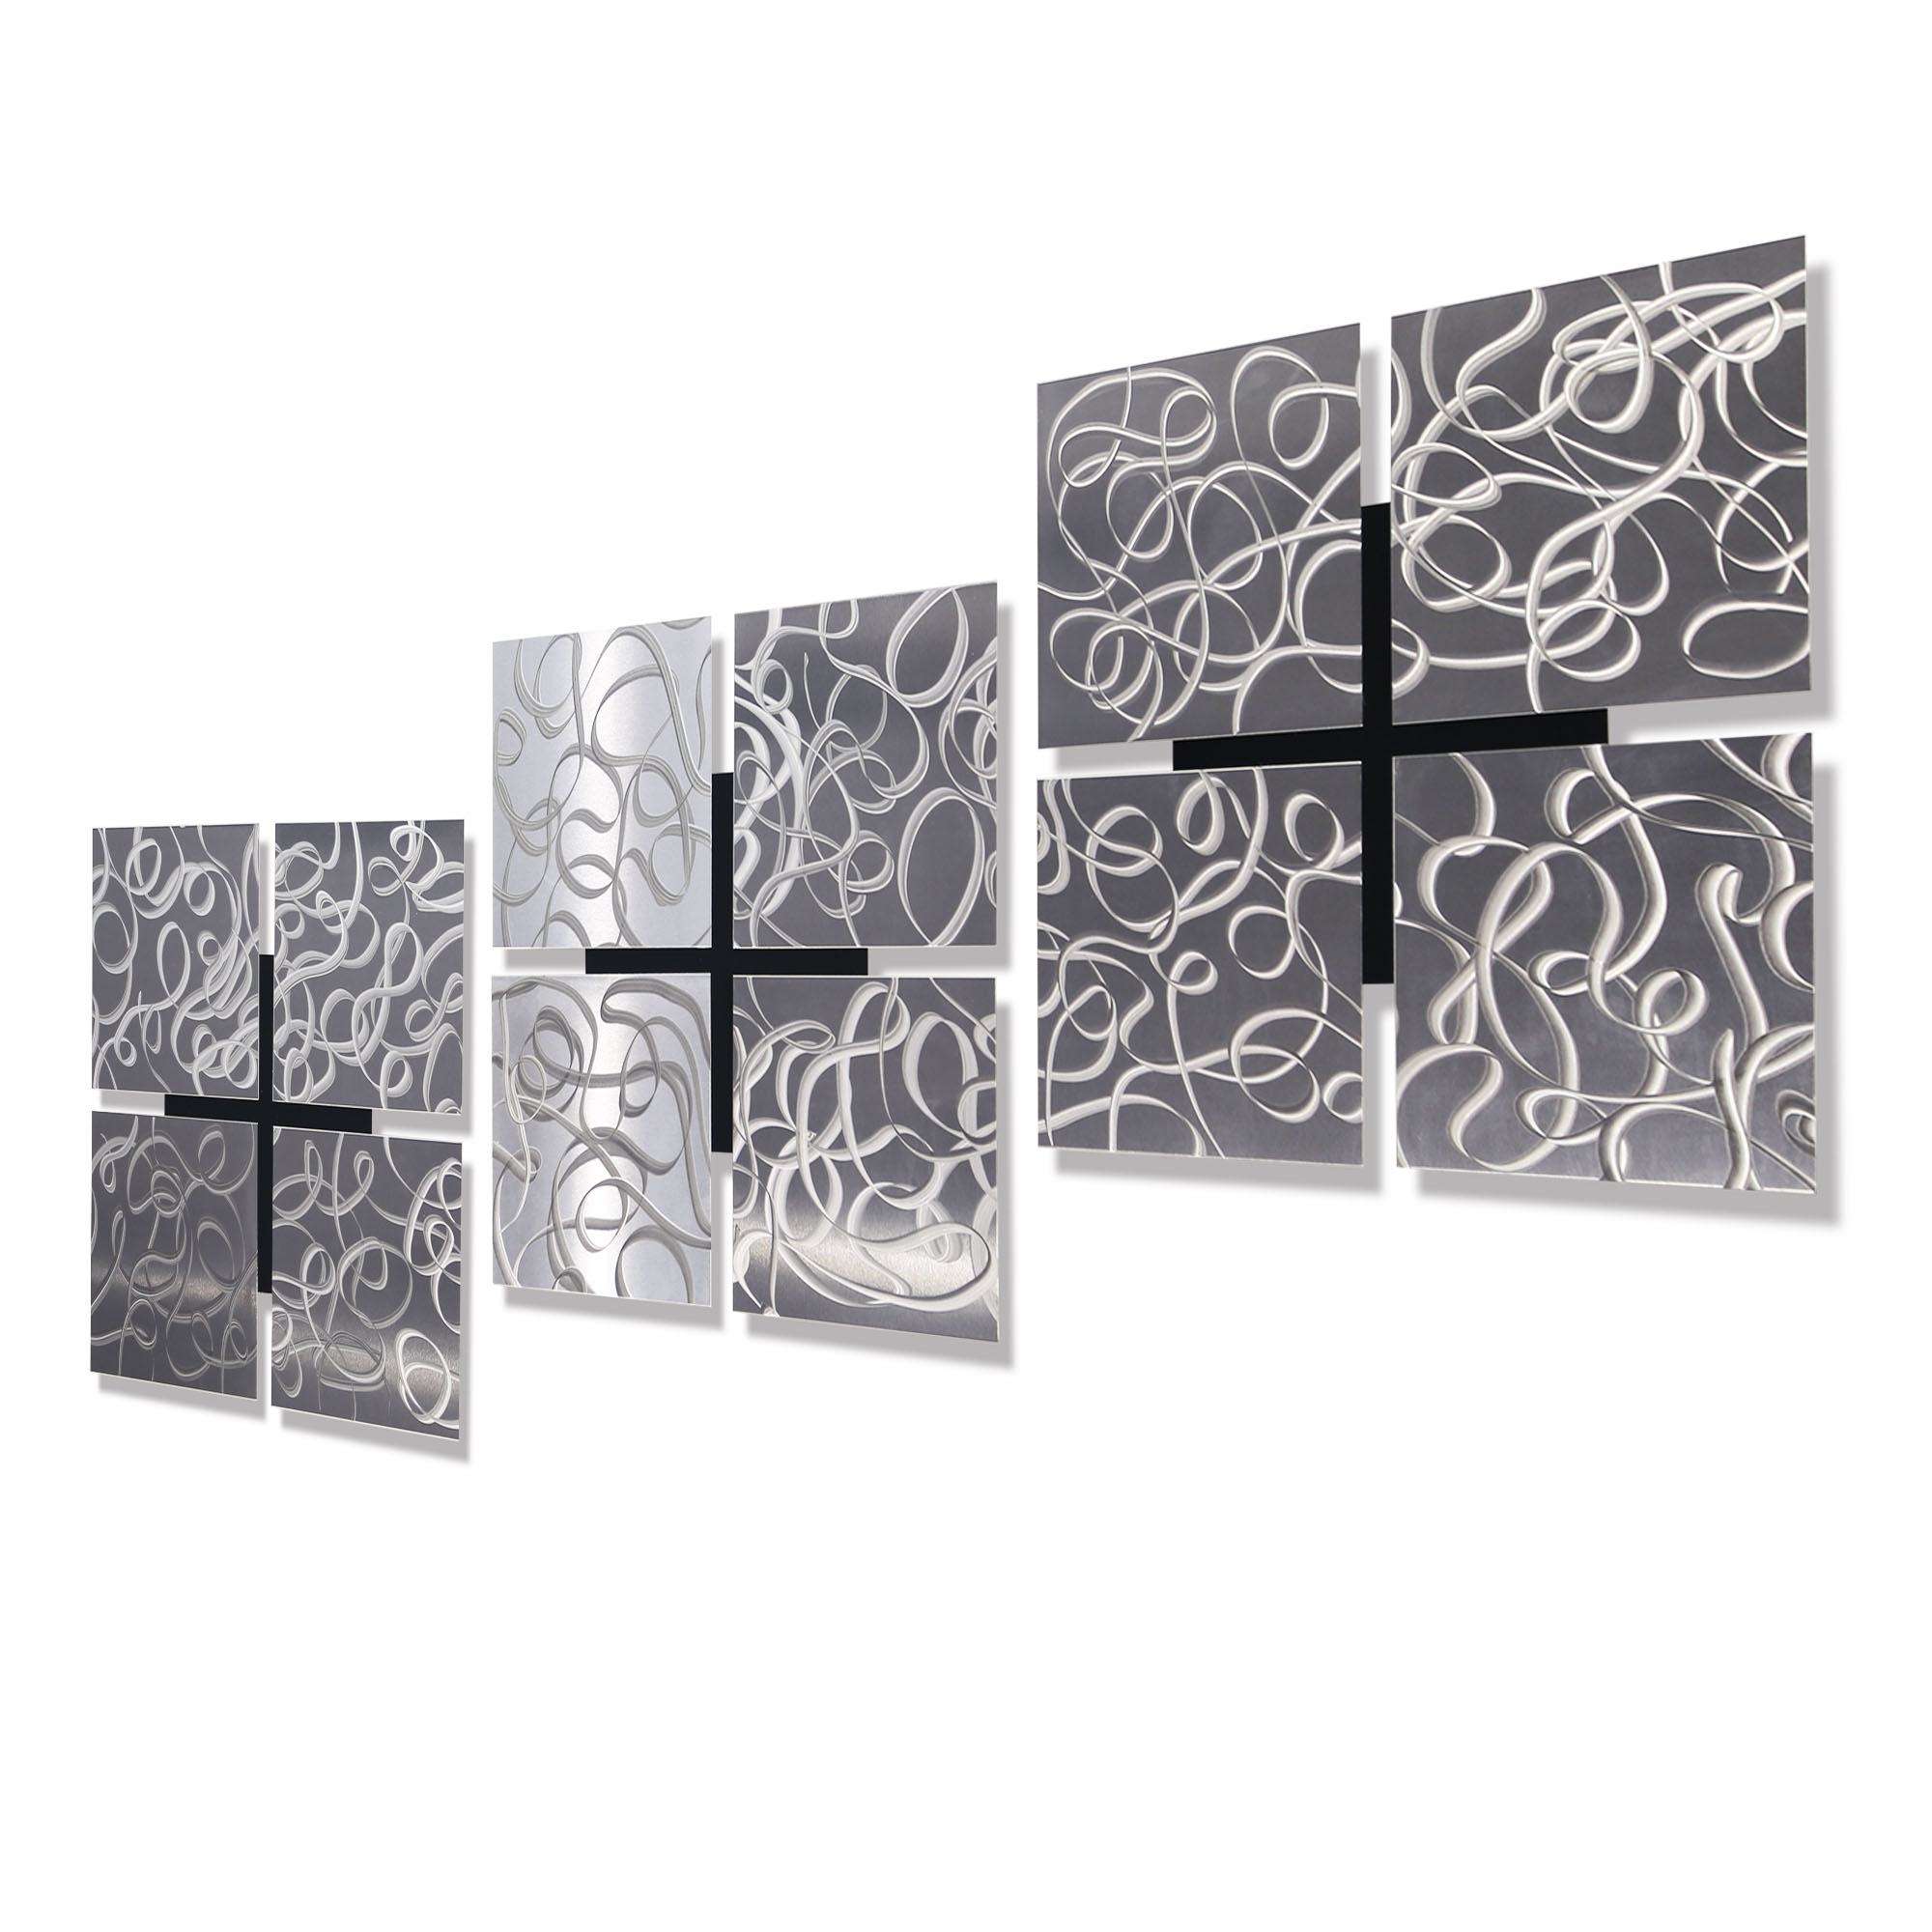 "3 Kings – Silver Set Of Three 12"" X 12"" Metal Wall Art Accents In Preferred Wall Art Accents (View 1 of 15)"